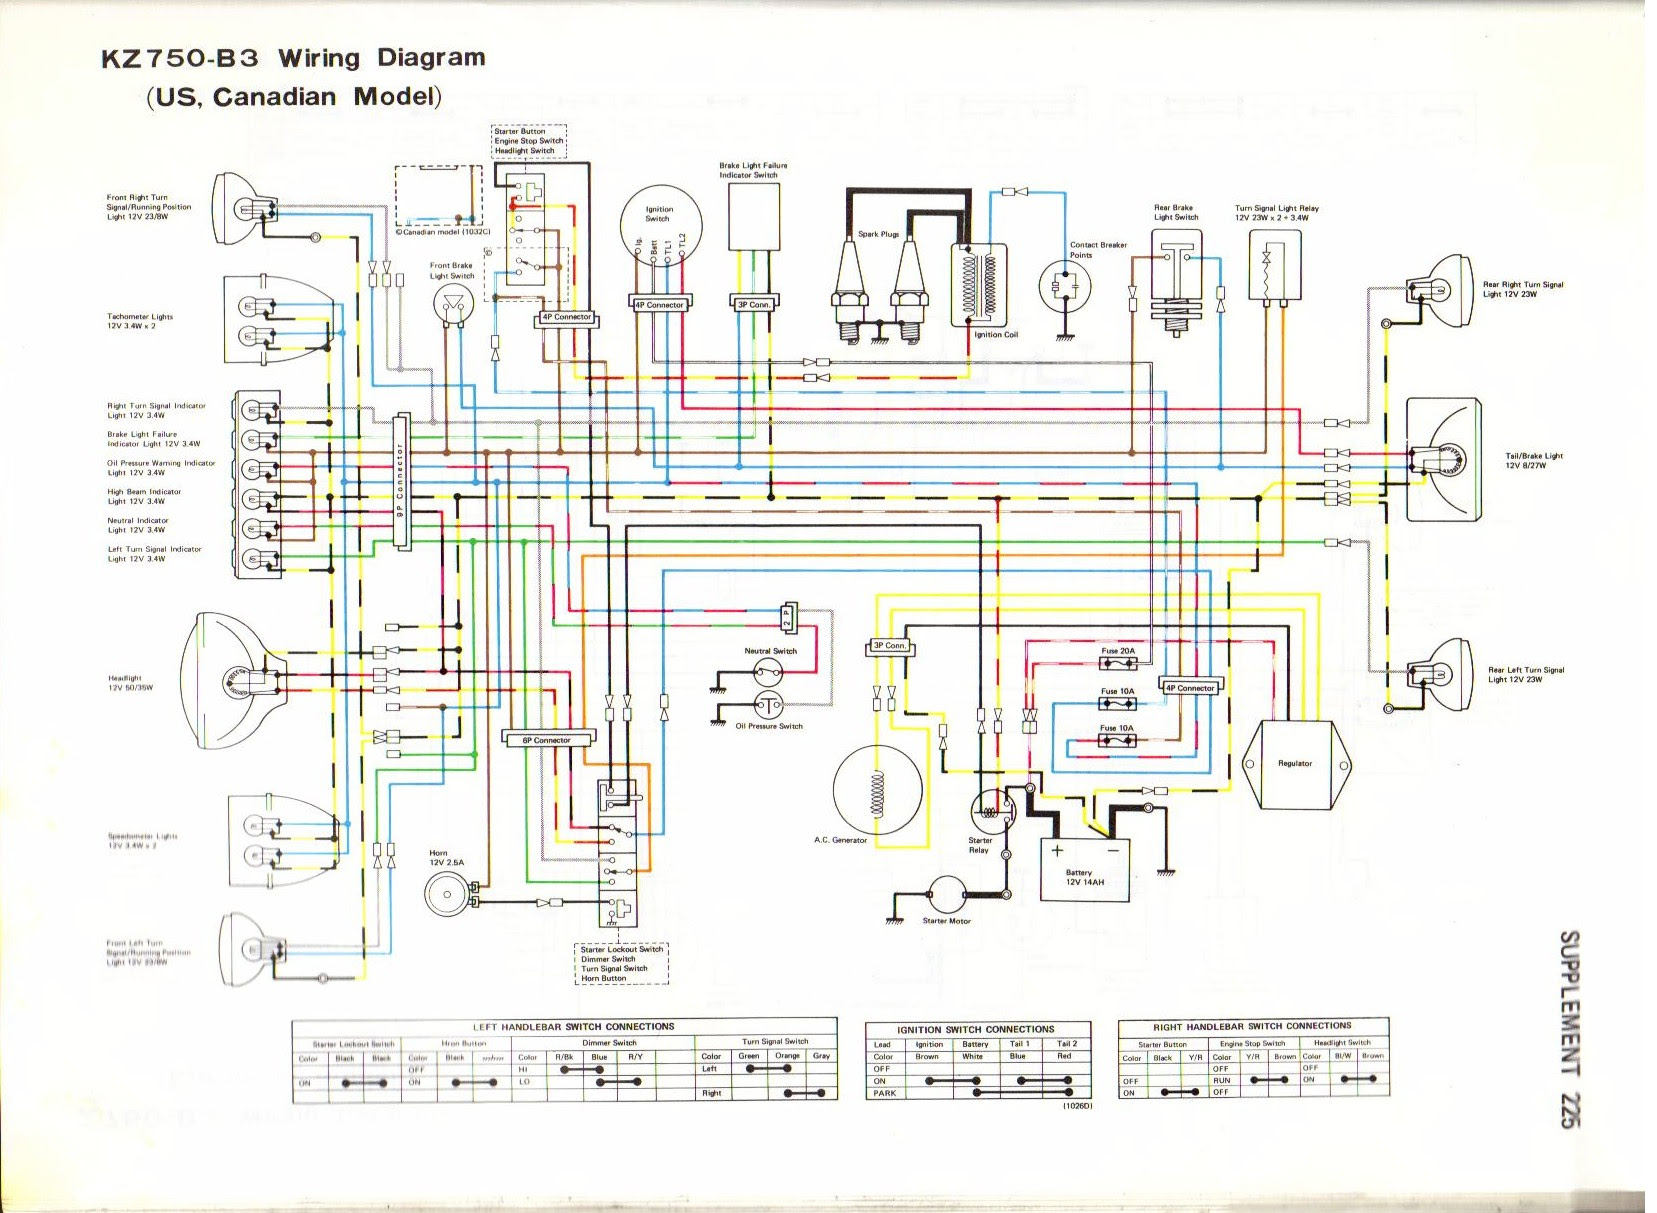 1976 Kz900 Coil Wiring Diagram Temperature Switch Wiring Diagram Begeboy Wiring Diagram Source